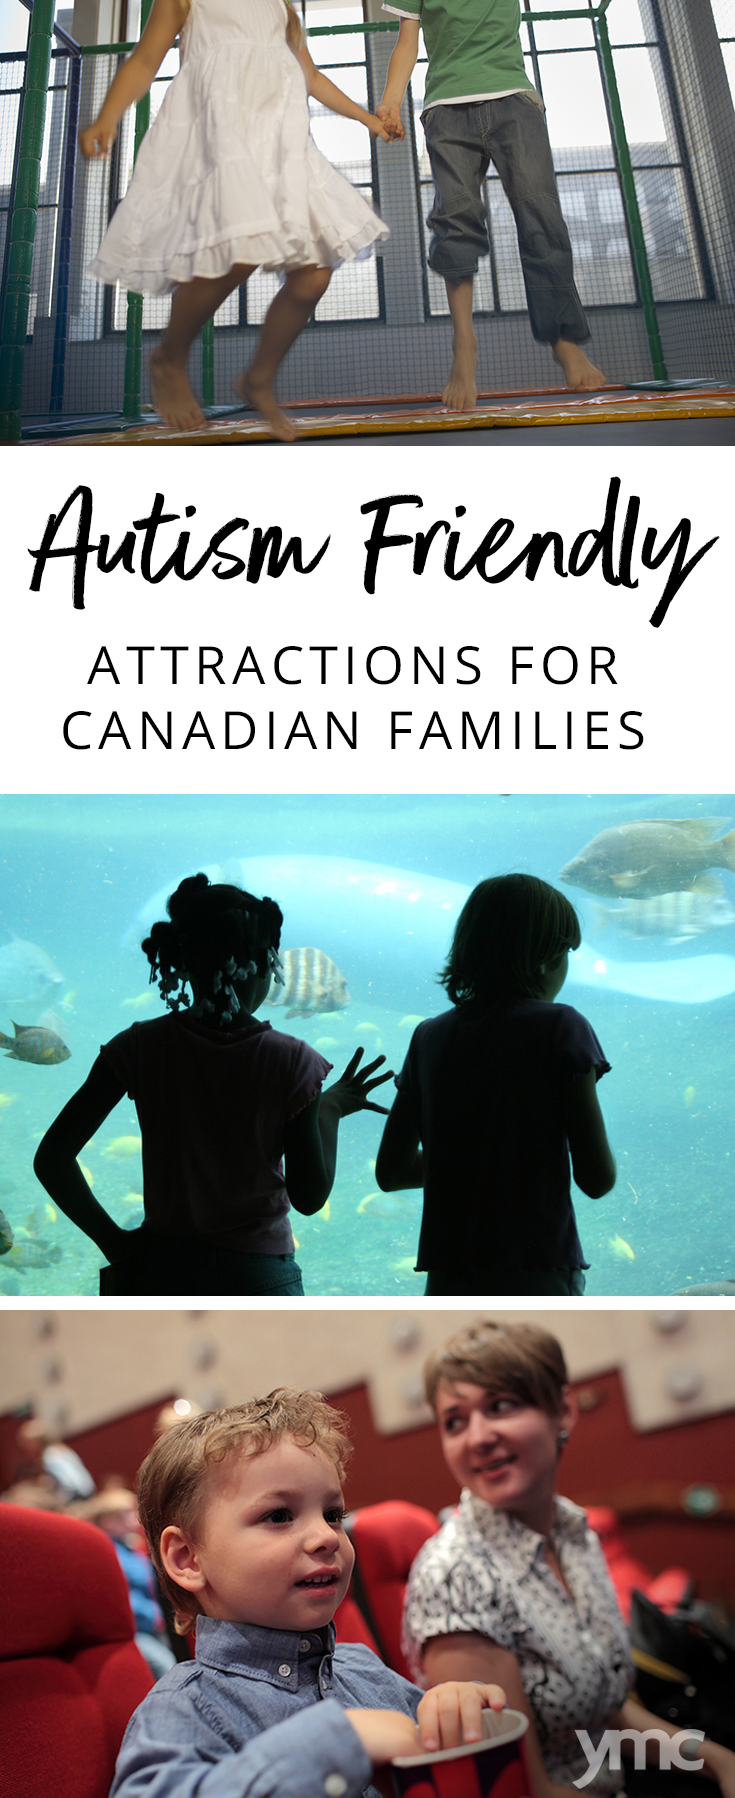 Going out for family fun can be a challenge when your child is autistic. Here's a list of autism friendly attractions in Ontario and Canada that can help make planning easy! | YMC